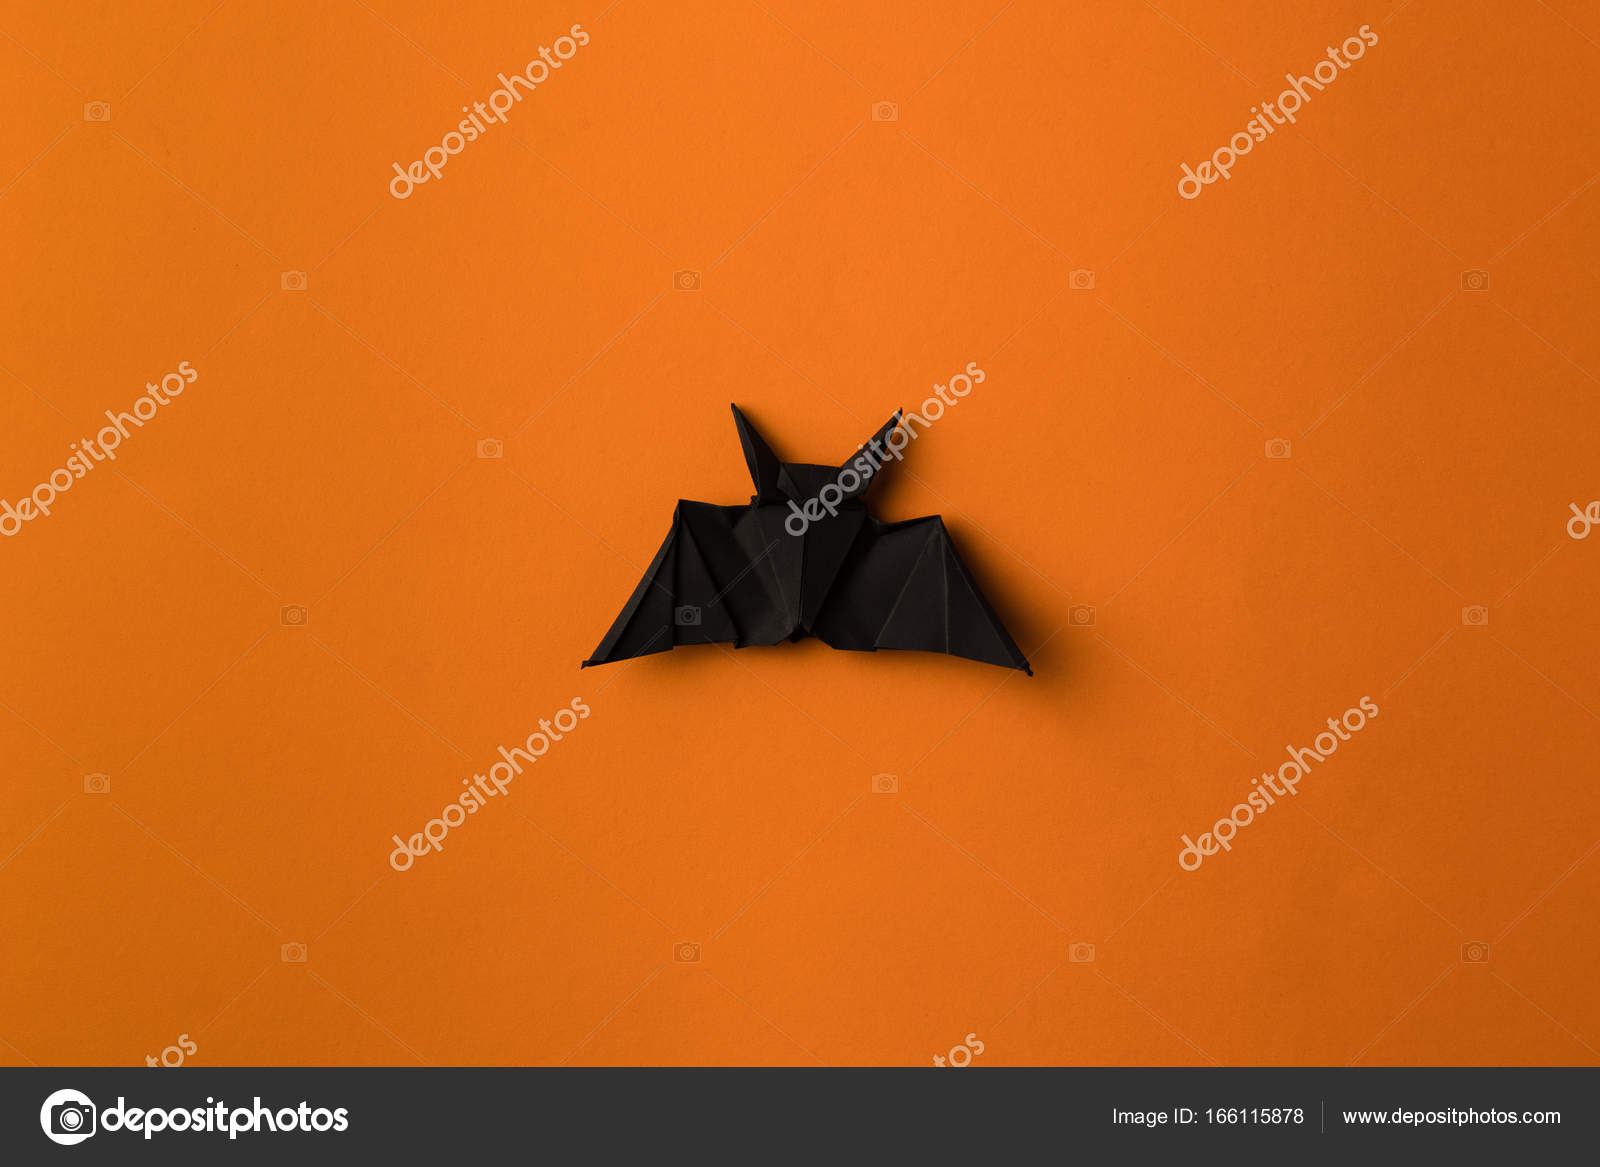 Halloween origami bat stock photo antonmatyukha 166115878 black halloween origami bat isolated on orange photo by antonmatyukha jeuxipadfo Gallery